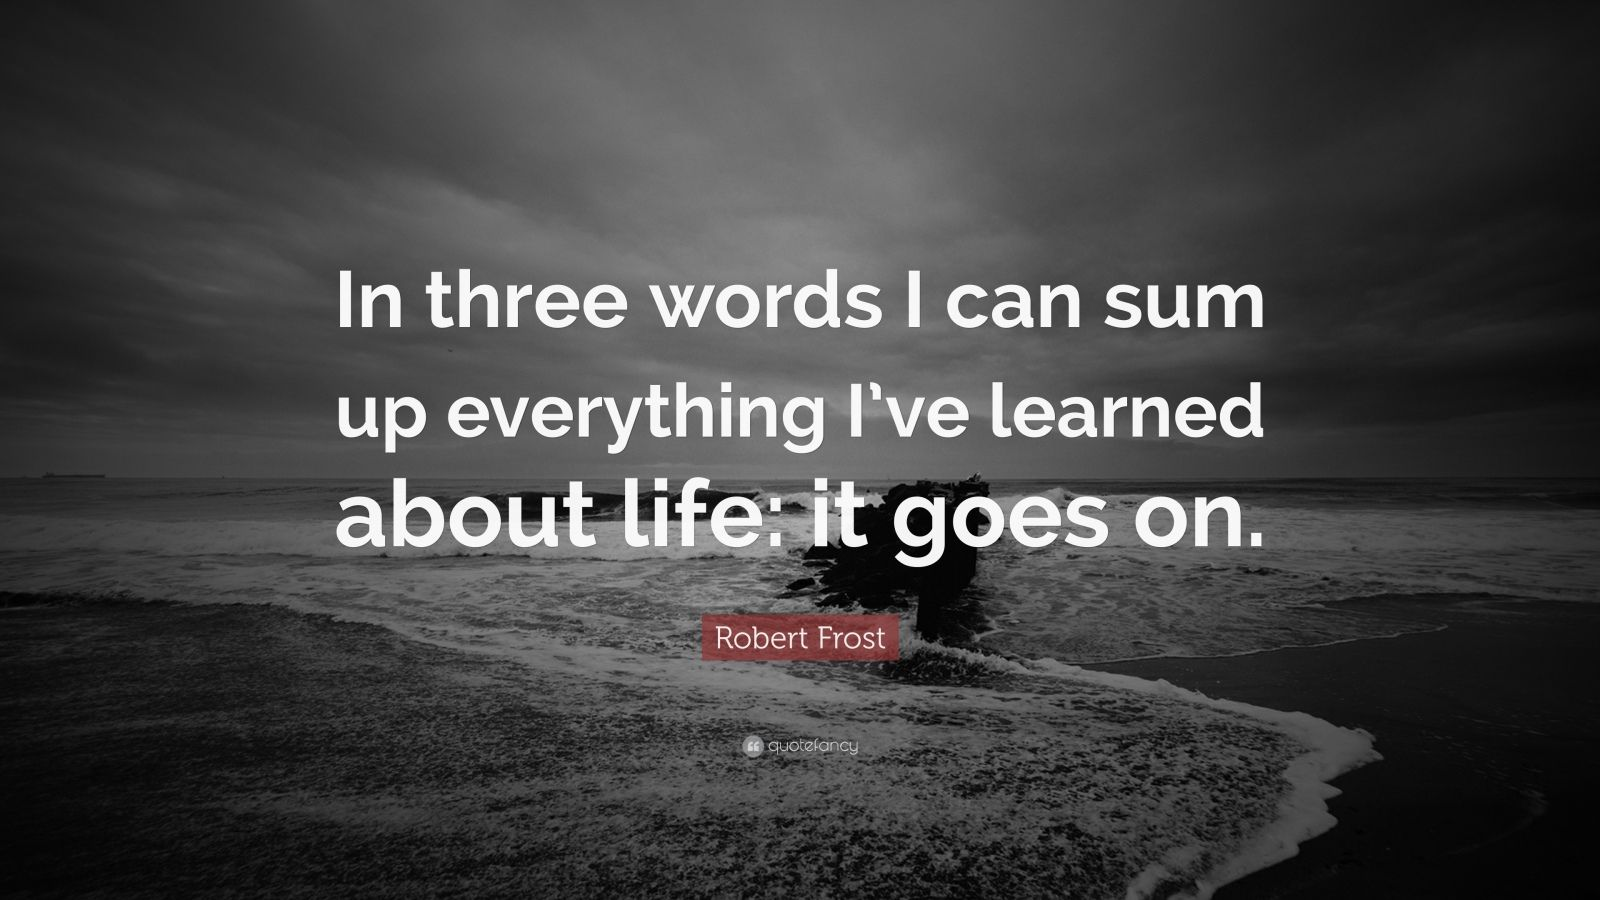 Robert Frost Quote In Three Words I Can Sum Up Everything I Ve Learned About Life Inspirational Quotes About Strength Quotes About Strength Max Lucado Quotes